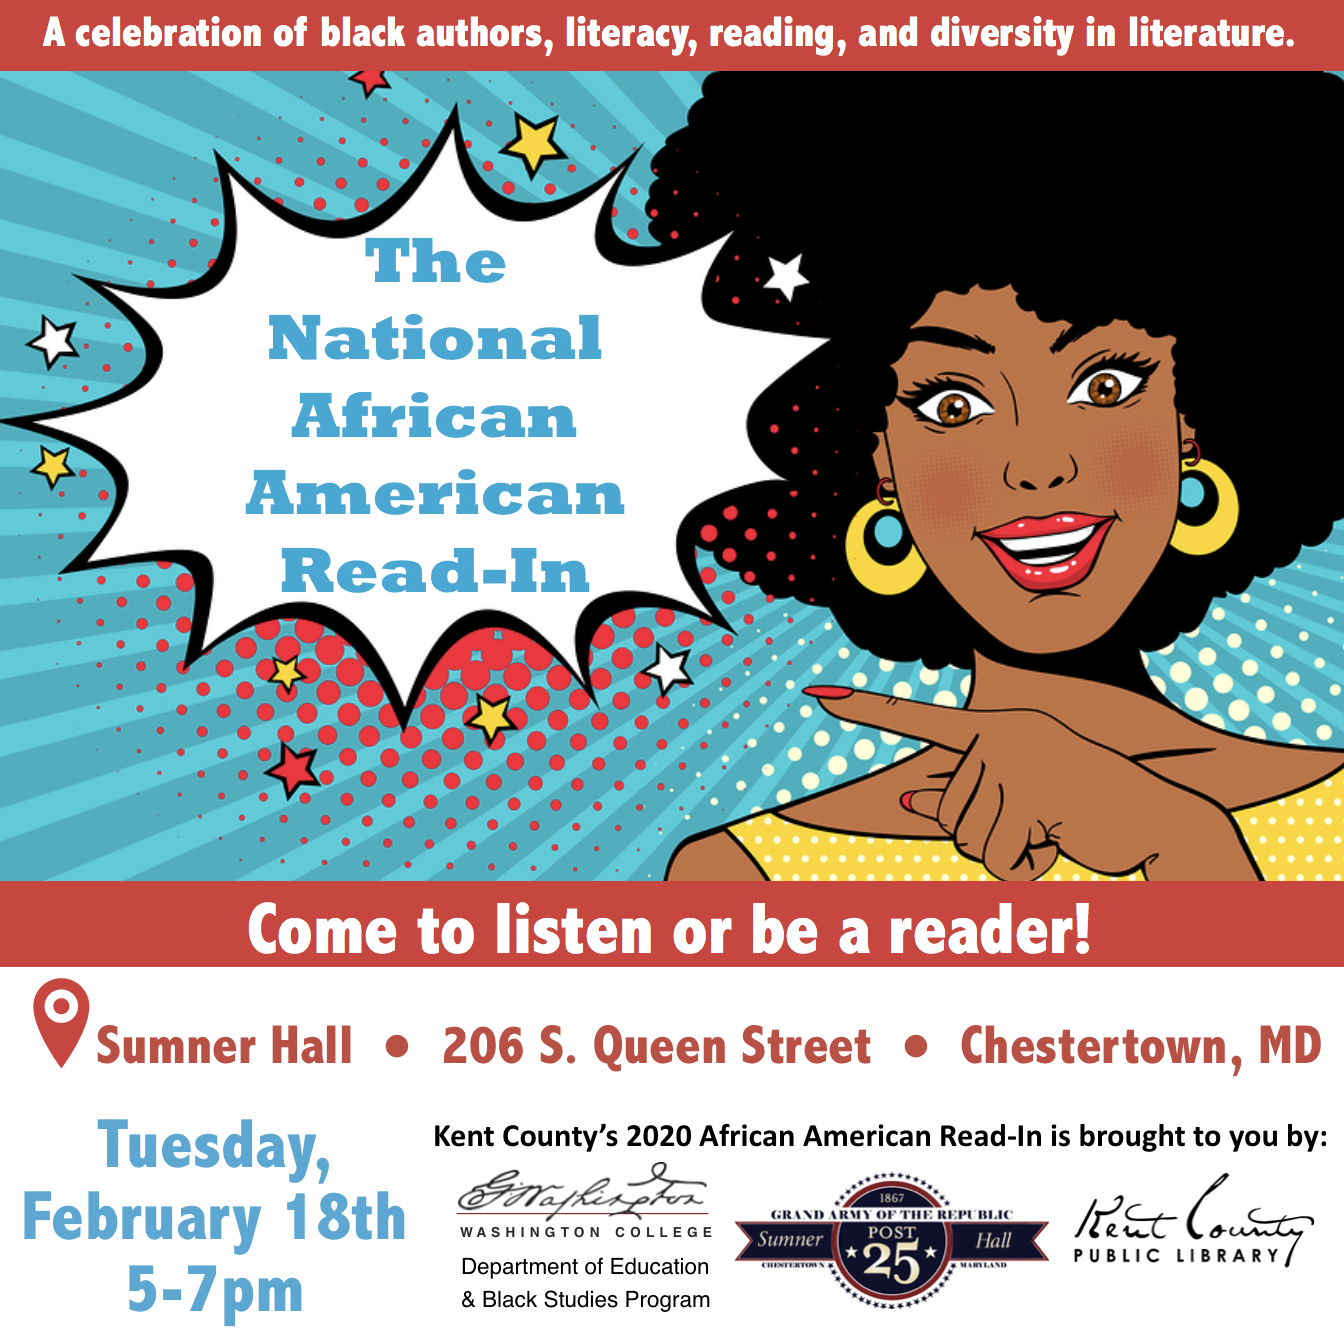 Kent County's 2020 African American Read-In